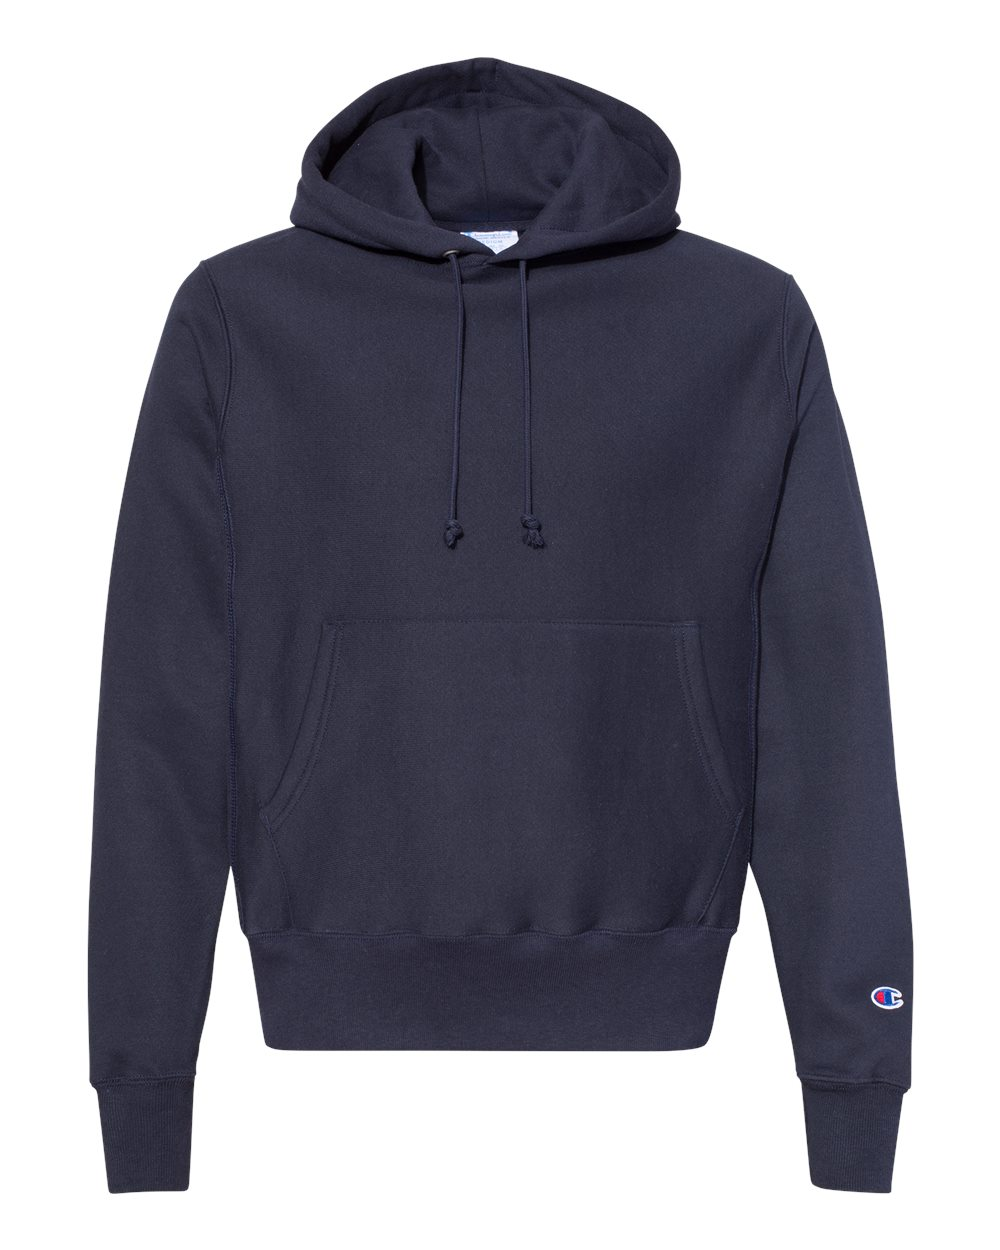 Champion-Mens-Reverse-Weave-Hooded-Pullover-Sweatshirt-S101-up-to-3XL thumbnail 30